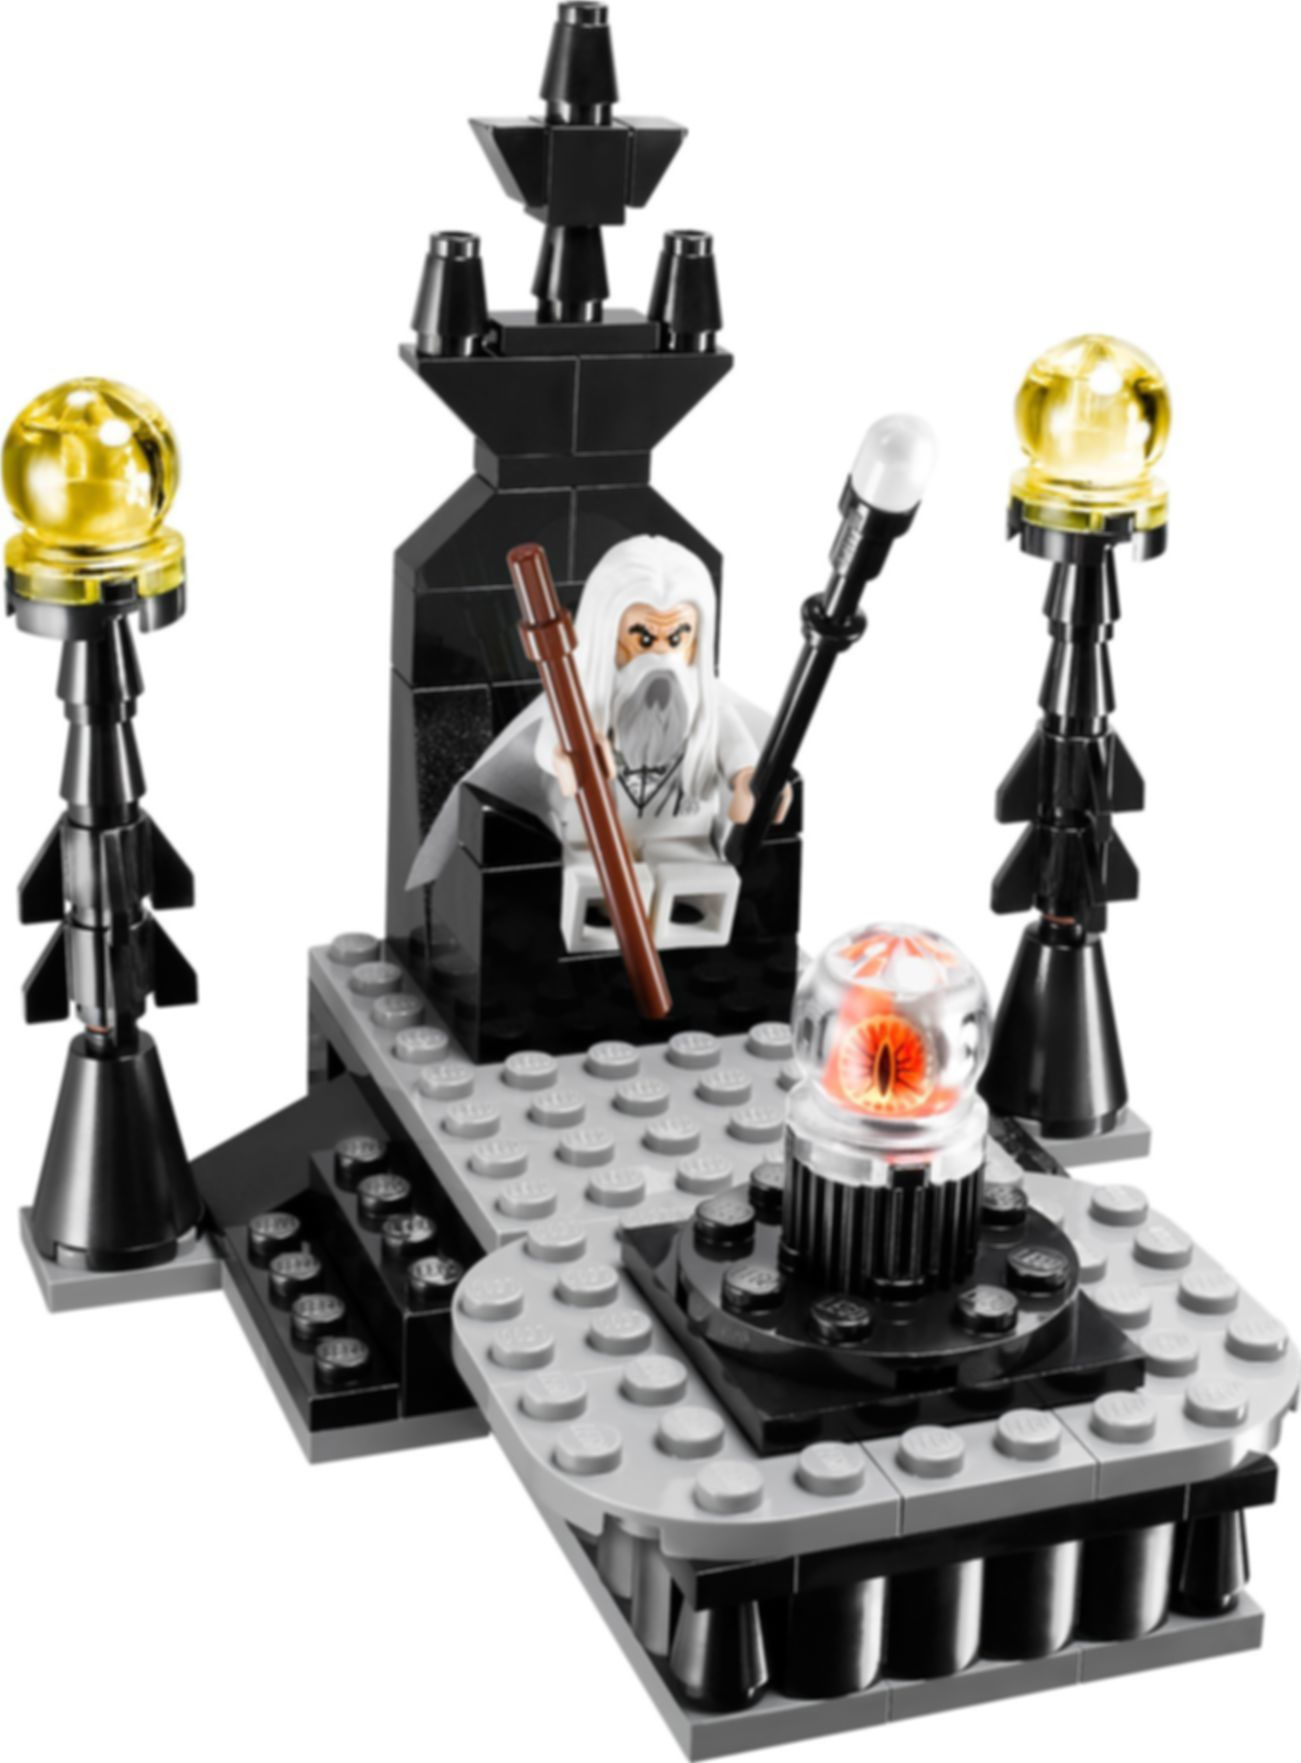 LEGO® The Lord of the Rings The Wizard Battle components